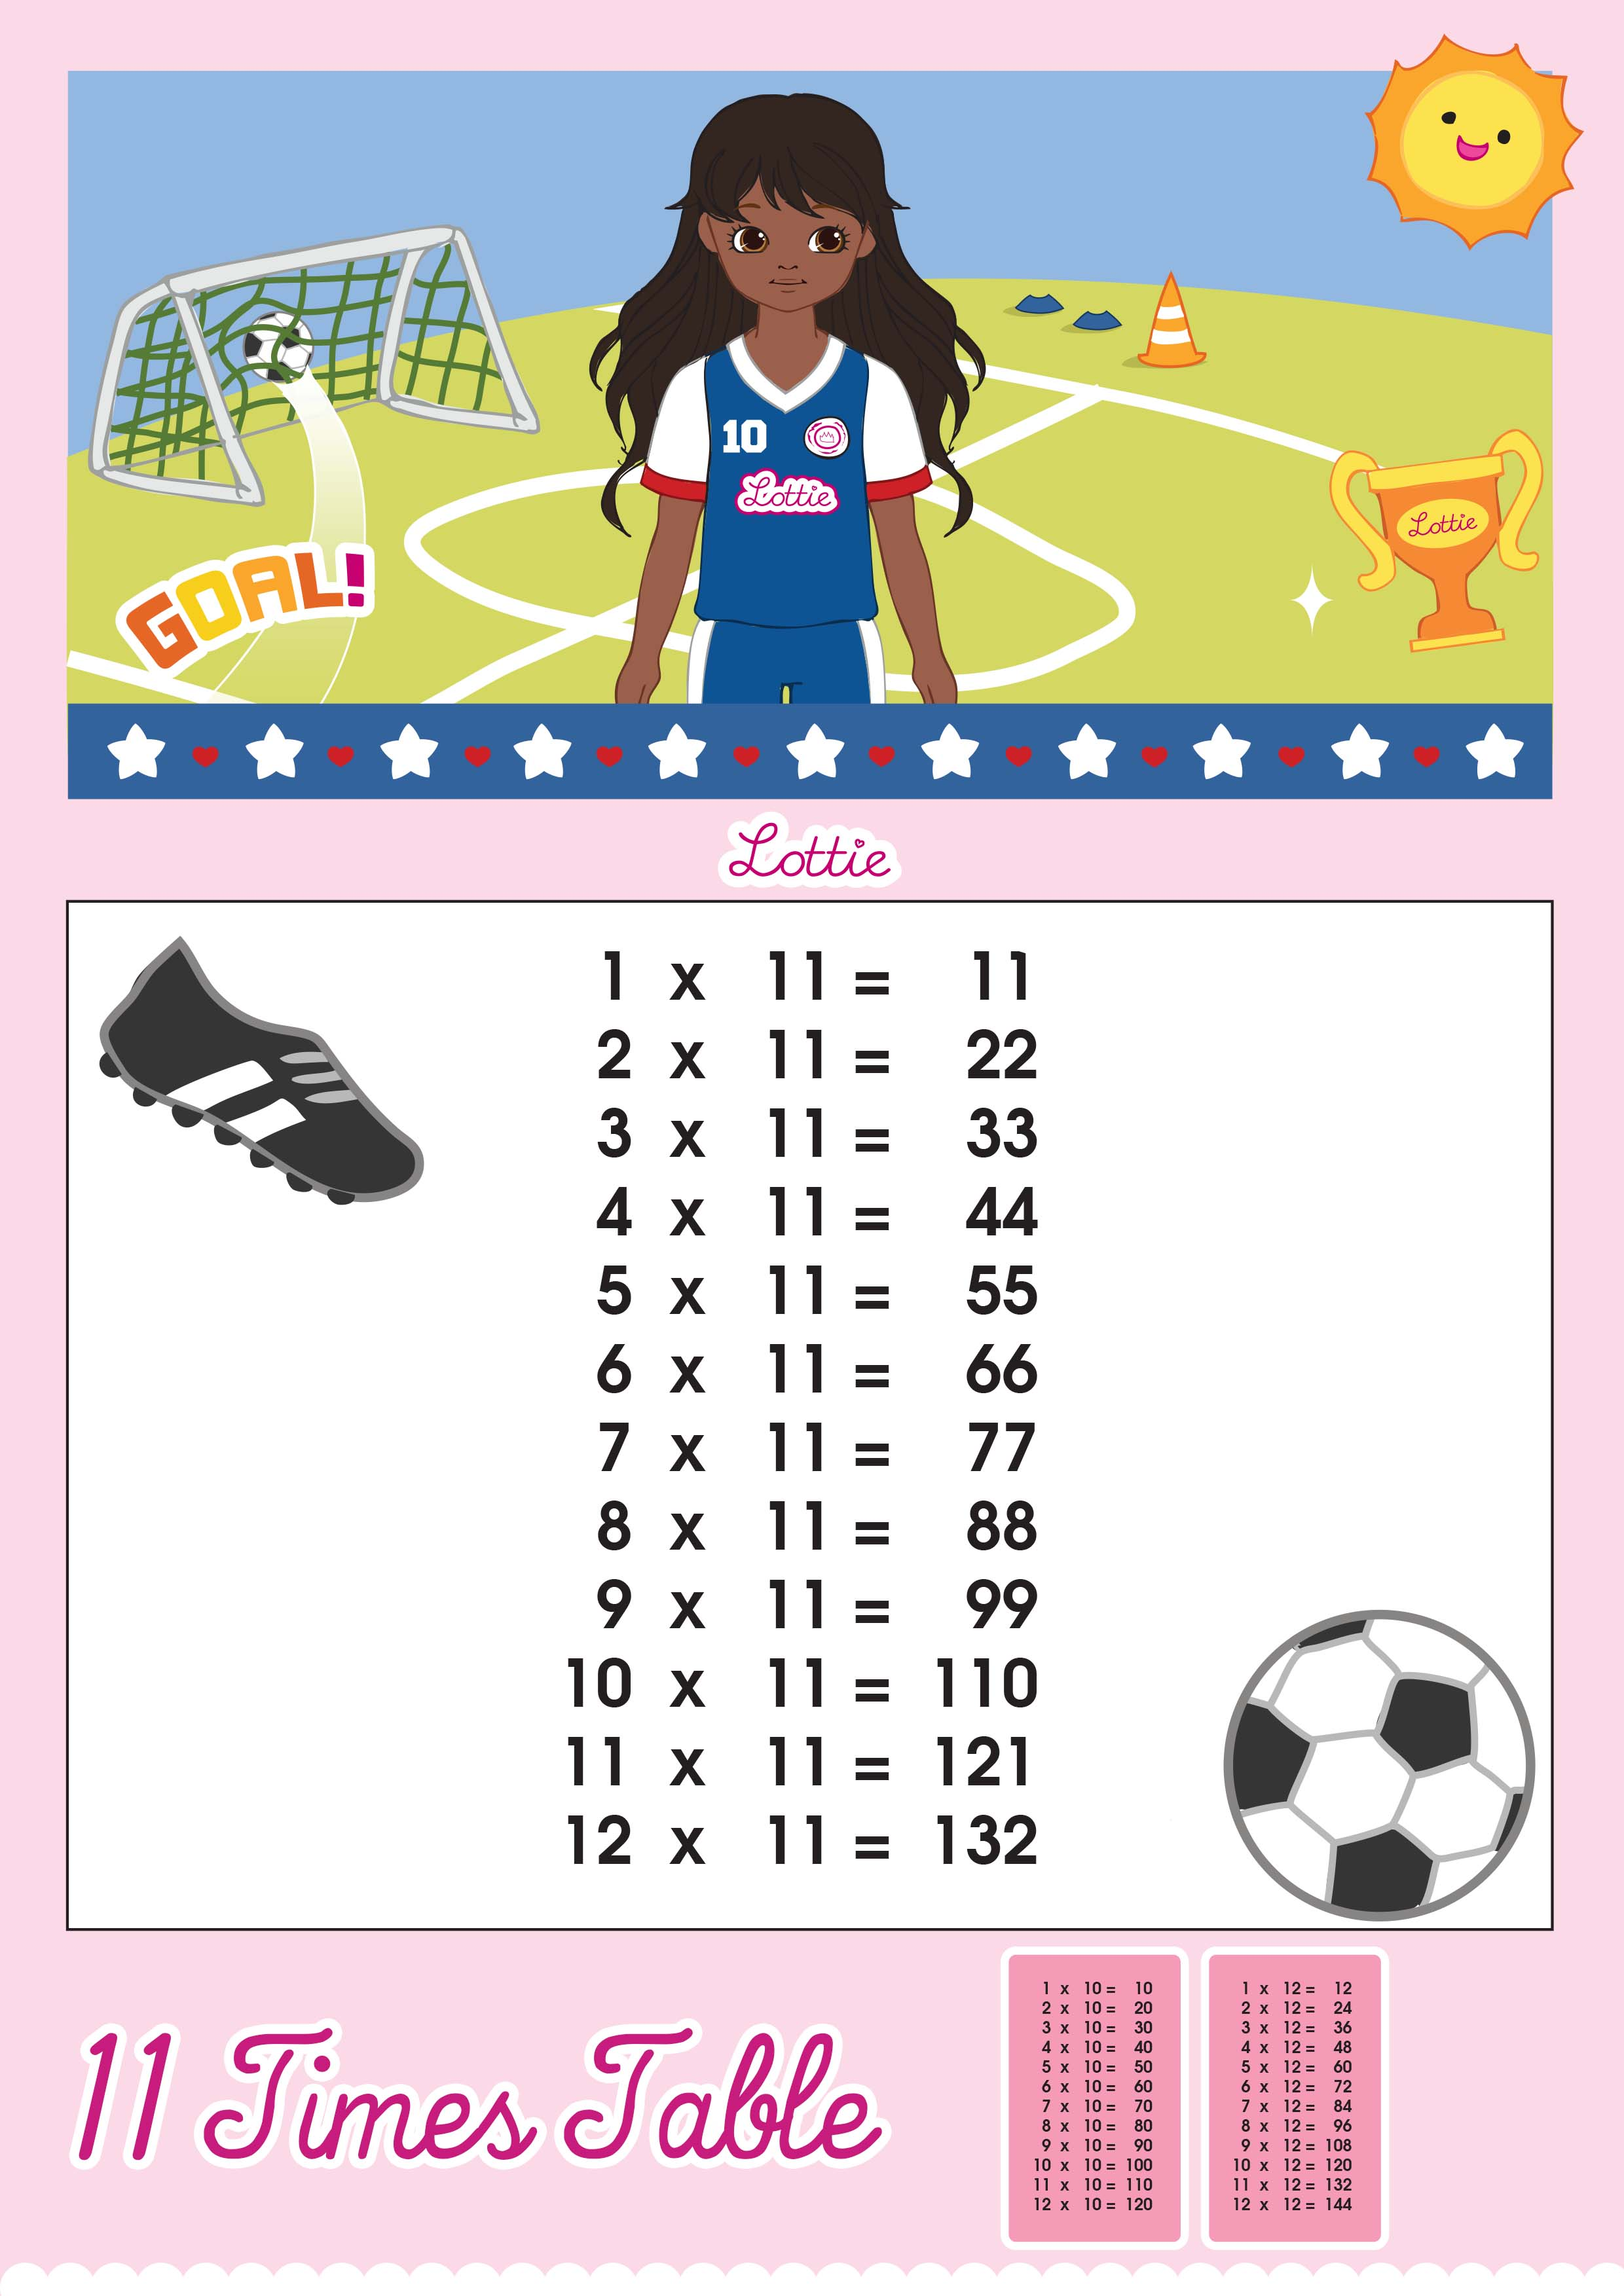 Learning times tables help for kids with dyspraxia dyspraxia kids eleven times table gamestrikefo Images